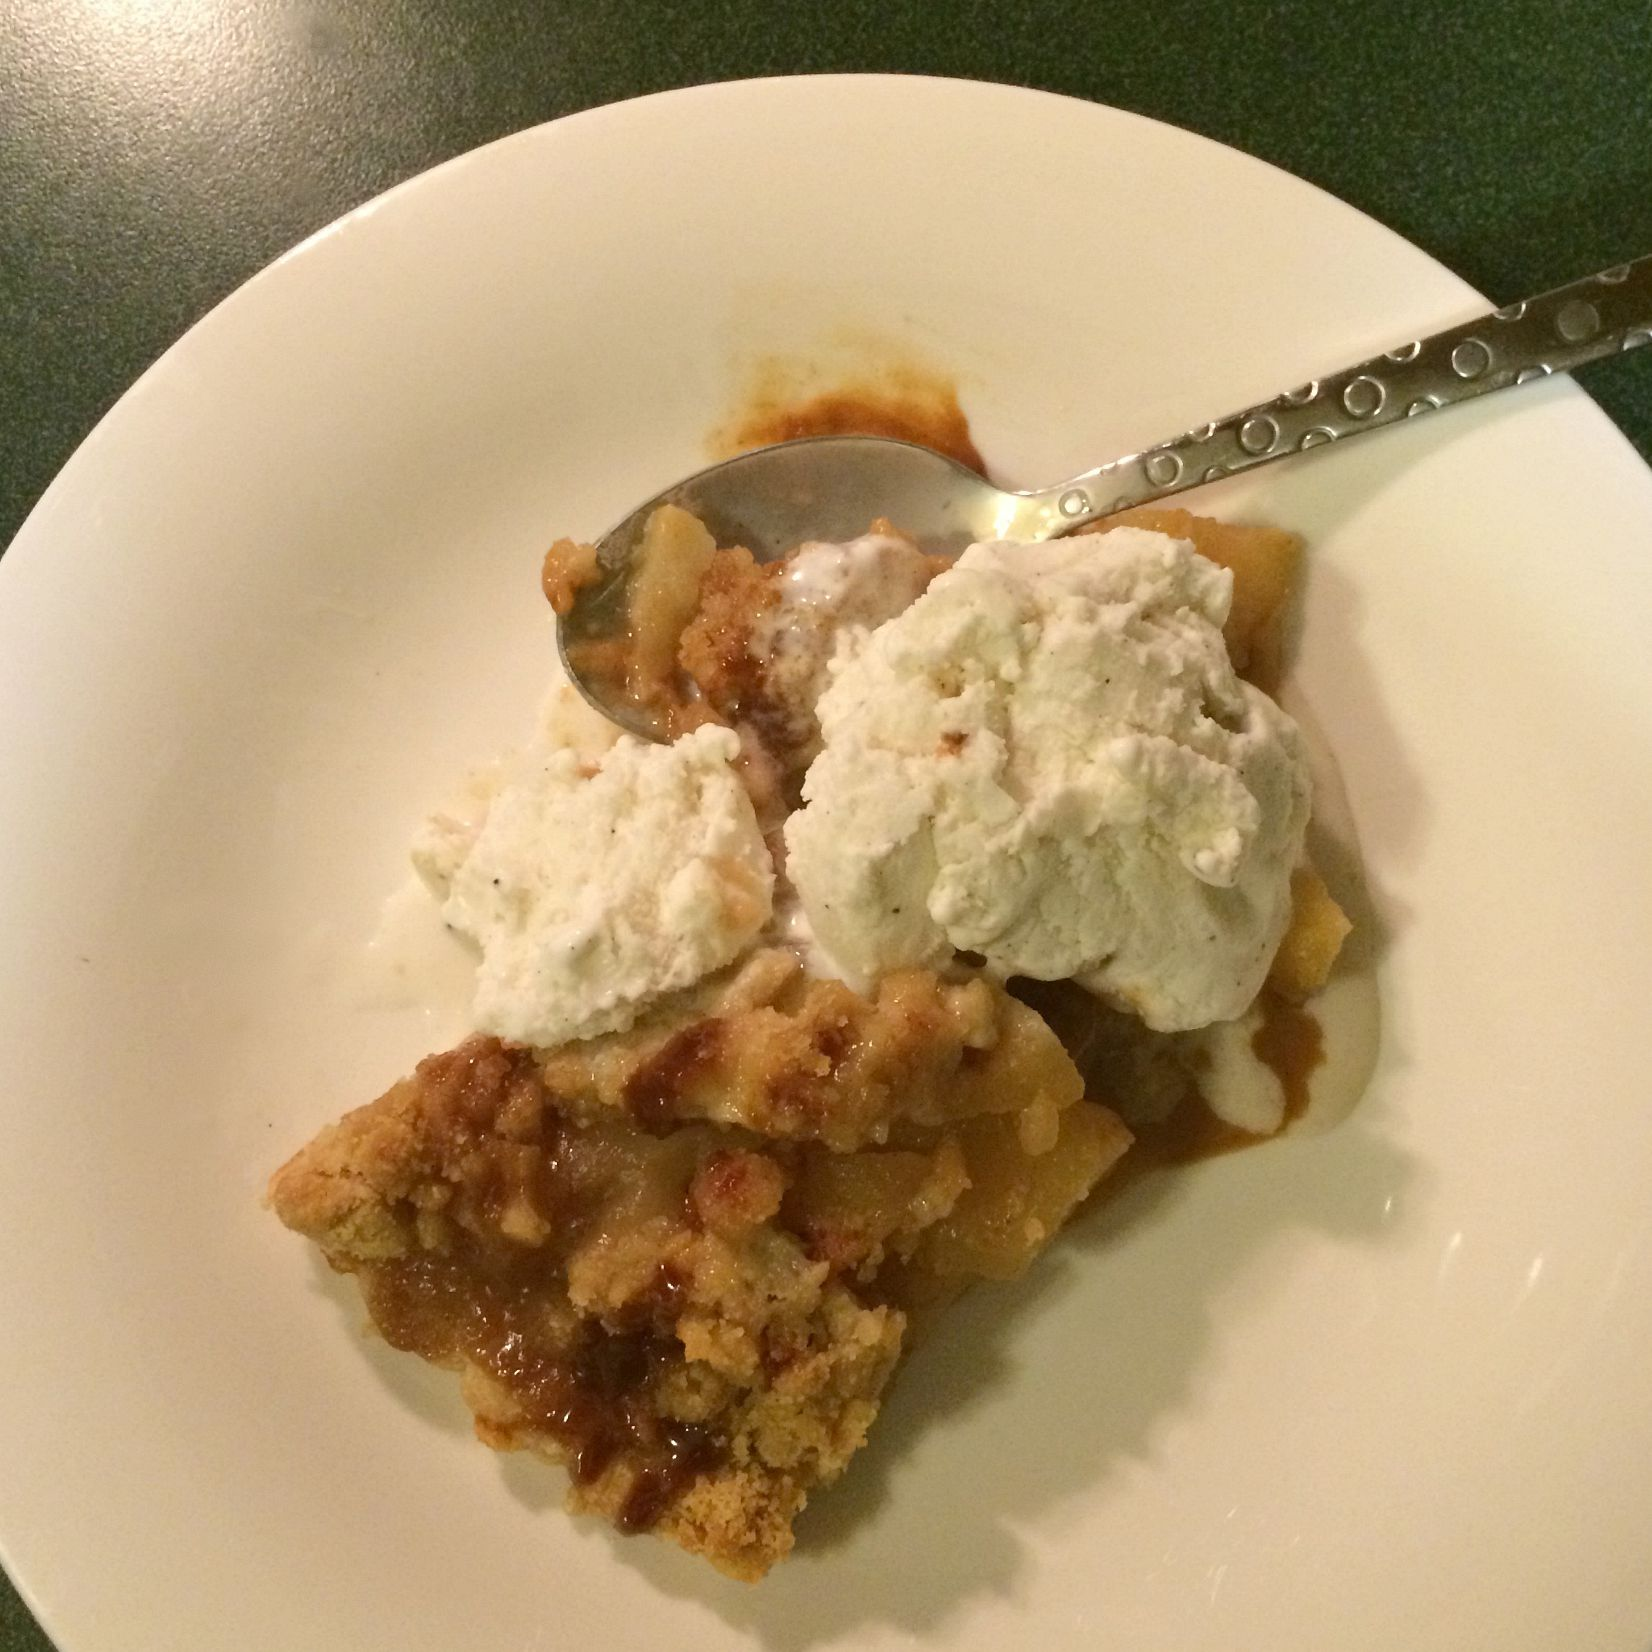 cider mill apple pie with vanilla ice cream